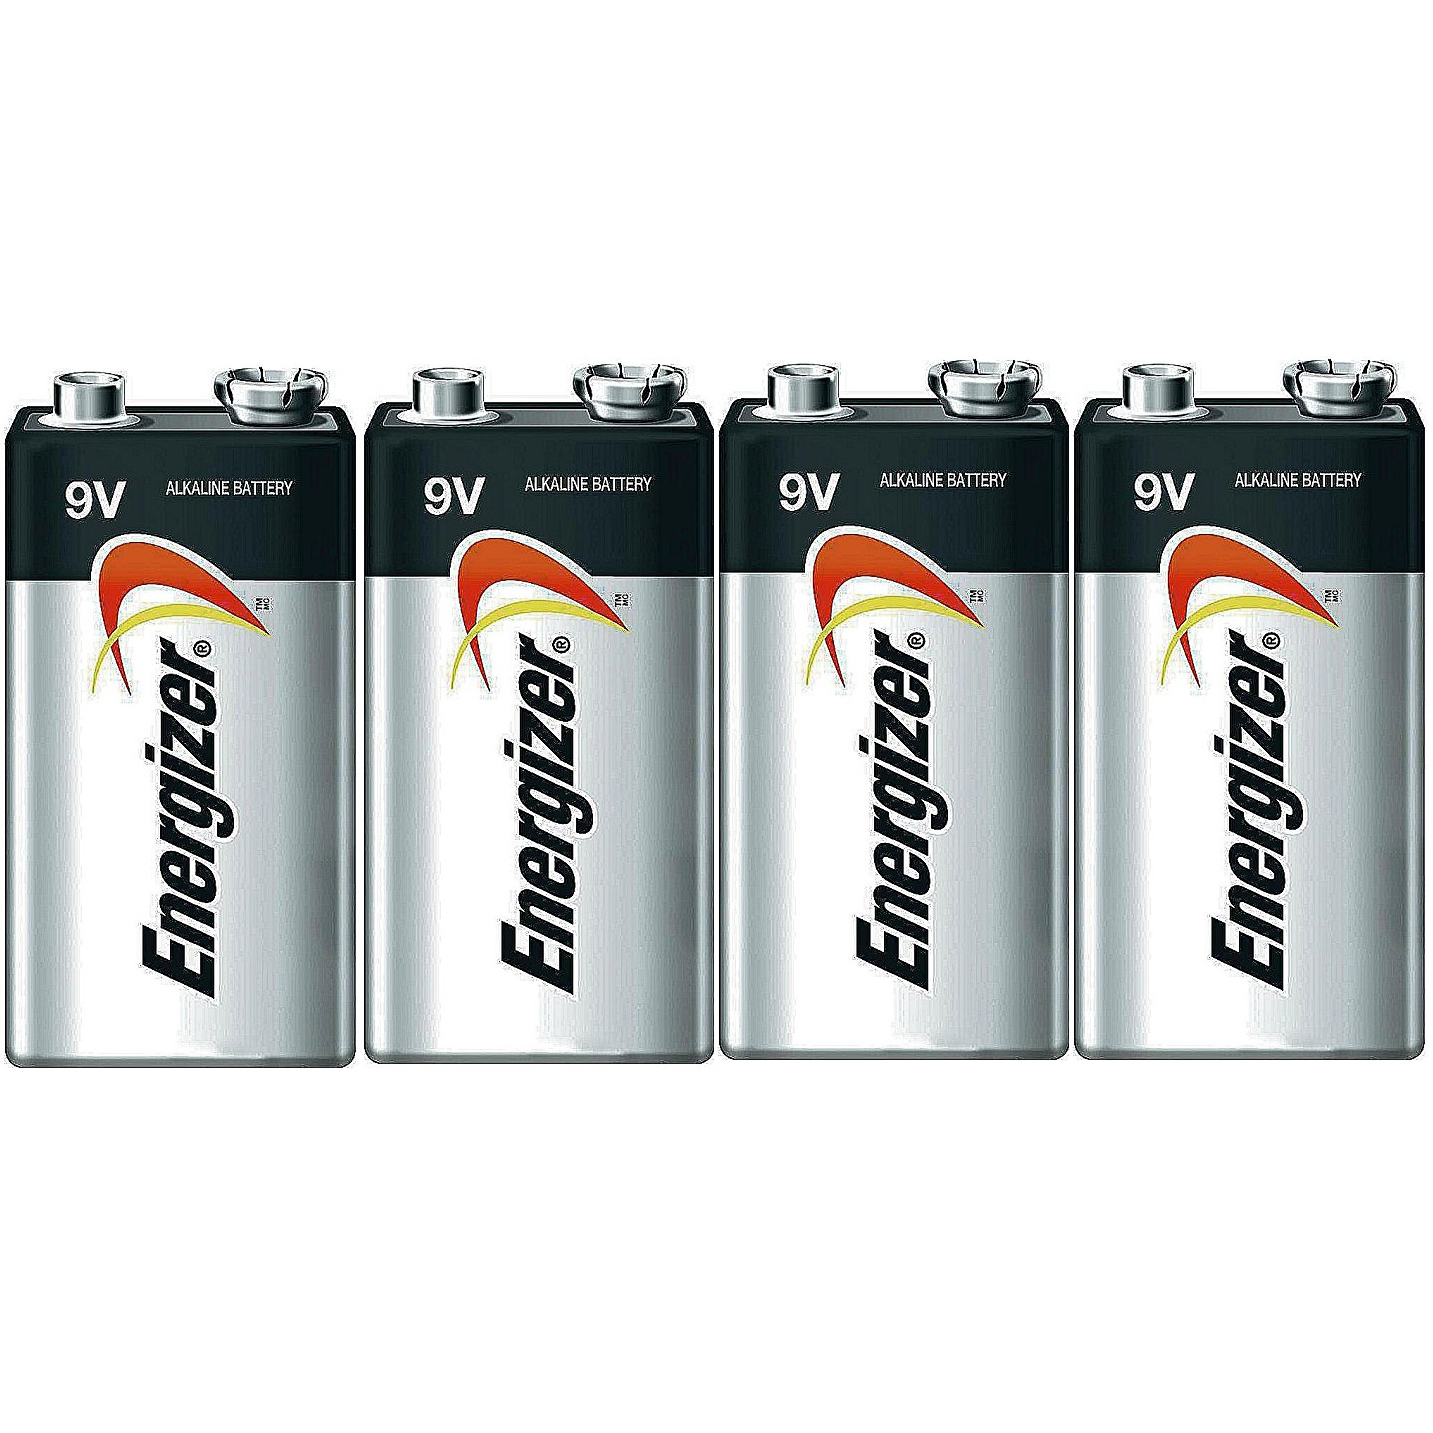 Energizer E522 Max 9 Volt Alkaline Battery - 4 Batteries + 30% Off!